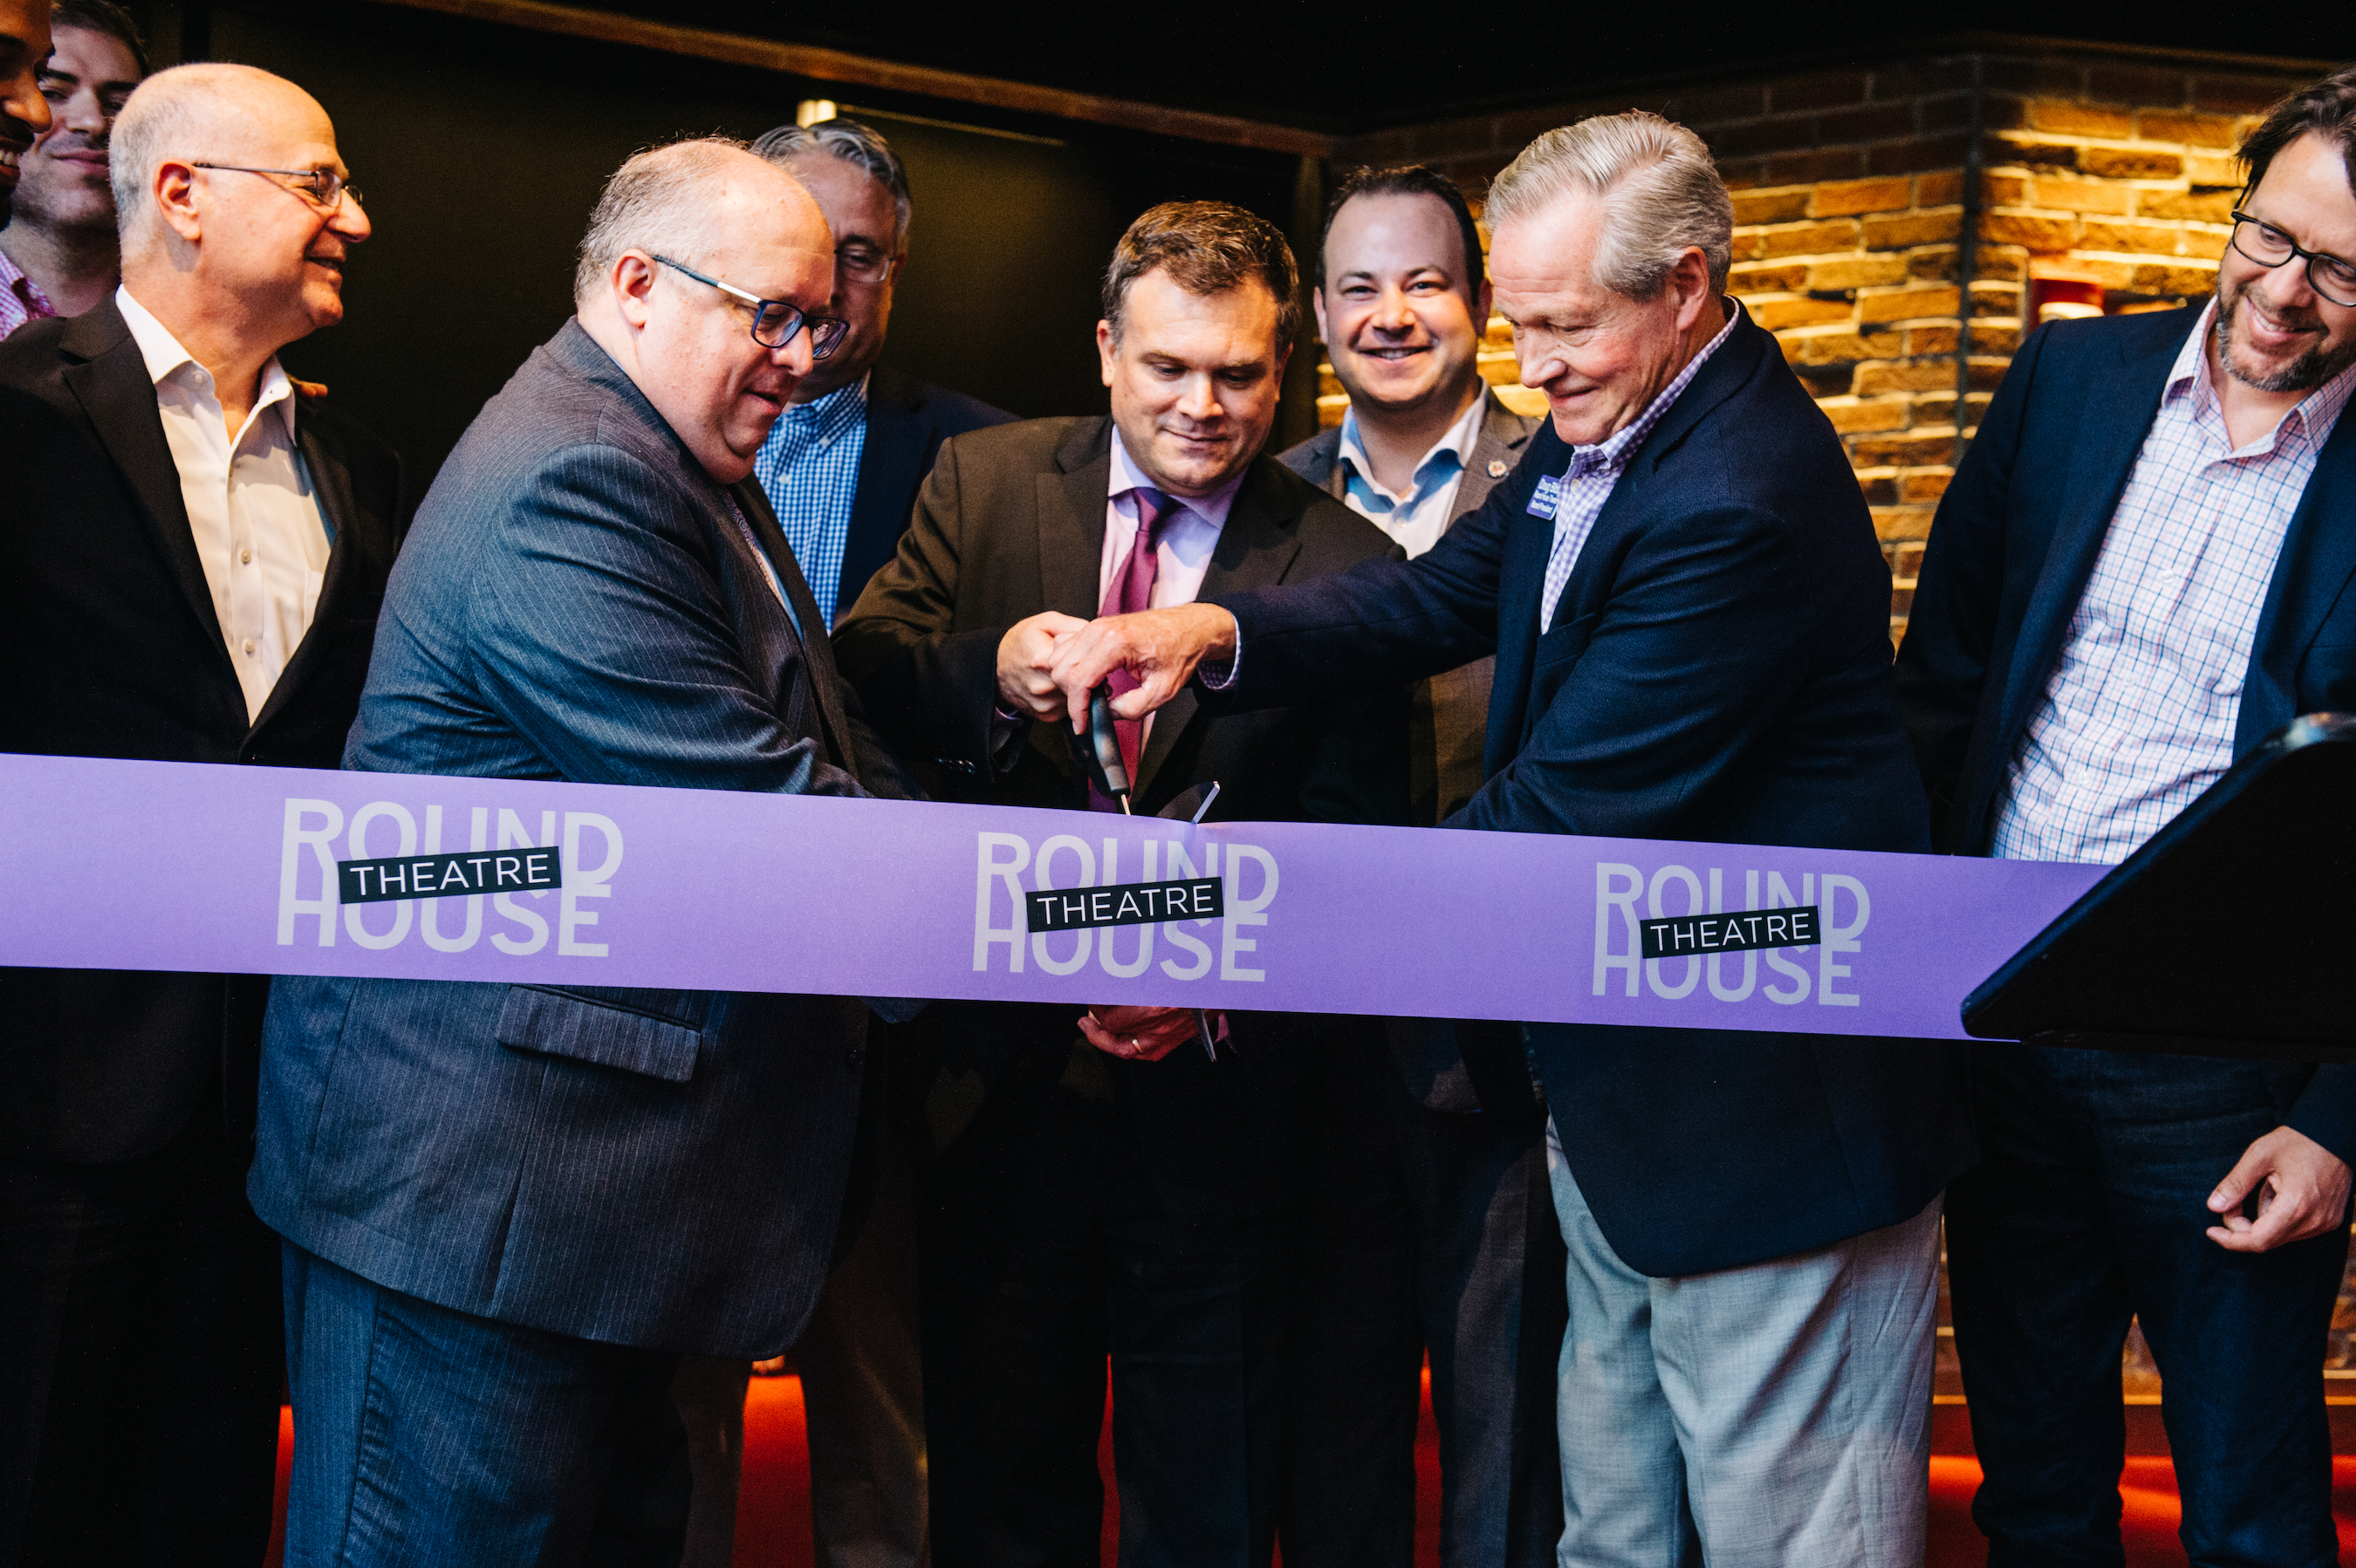 Cutting the ribbon on the newly renovated theatre at a recent Open House for the community: Managing Director Ed Zakreski, Artistic Director Ryan Rilette and Board President Doug Bibby.